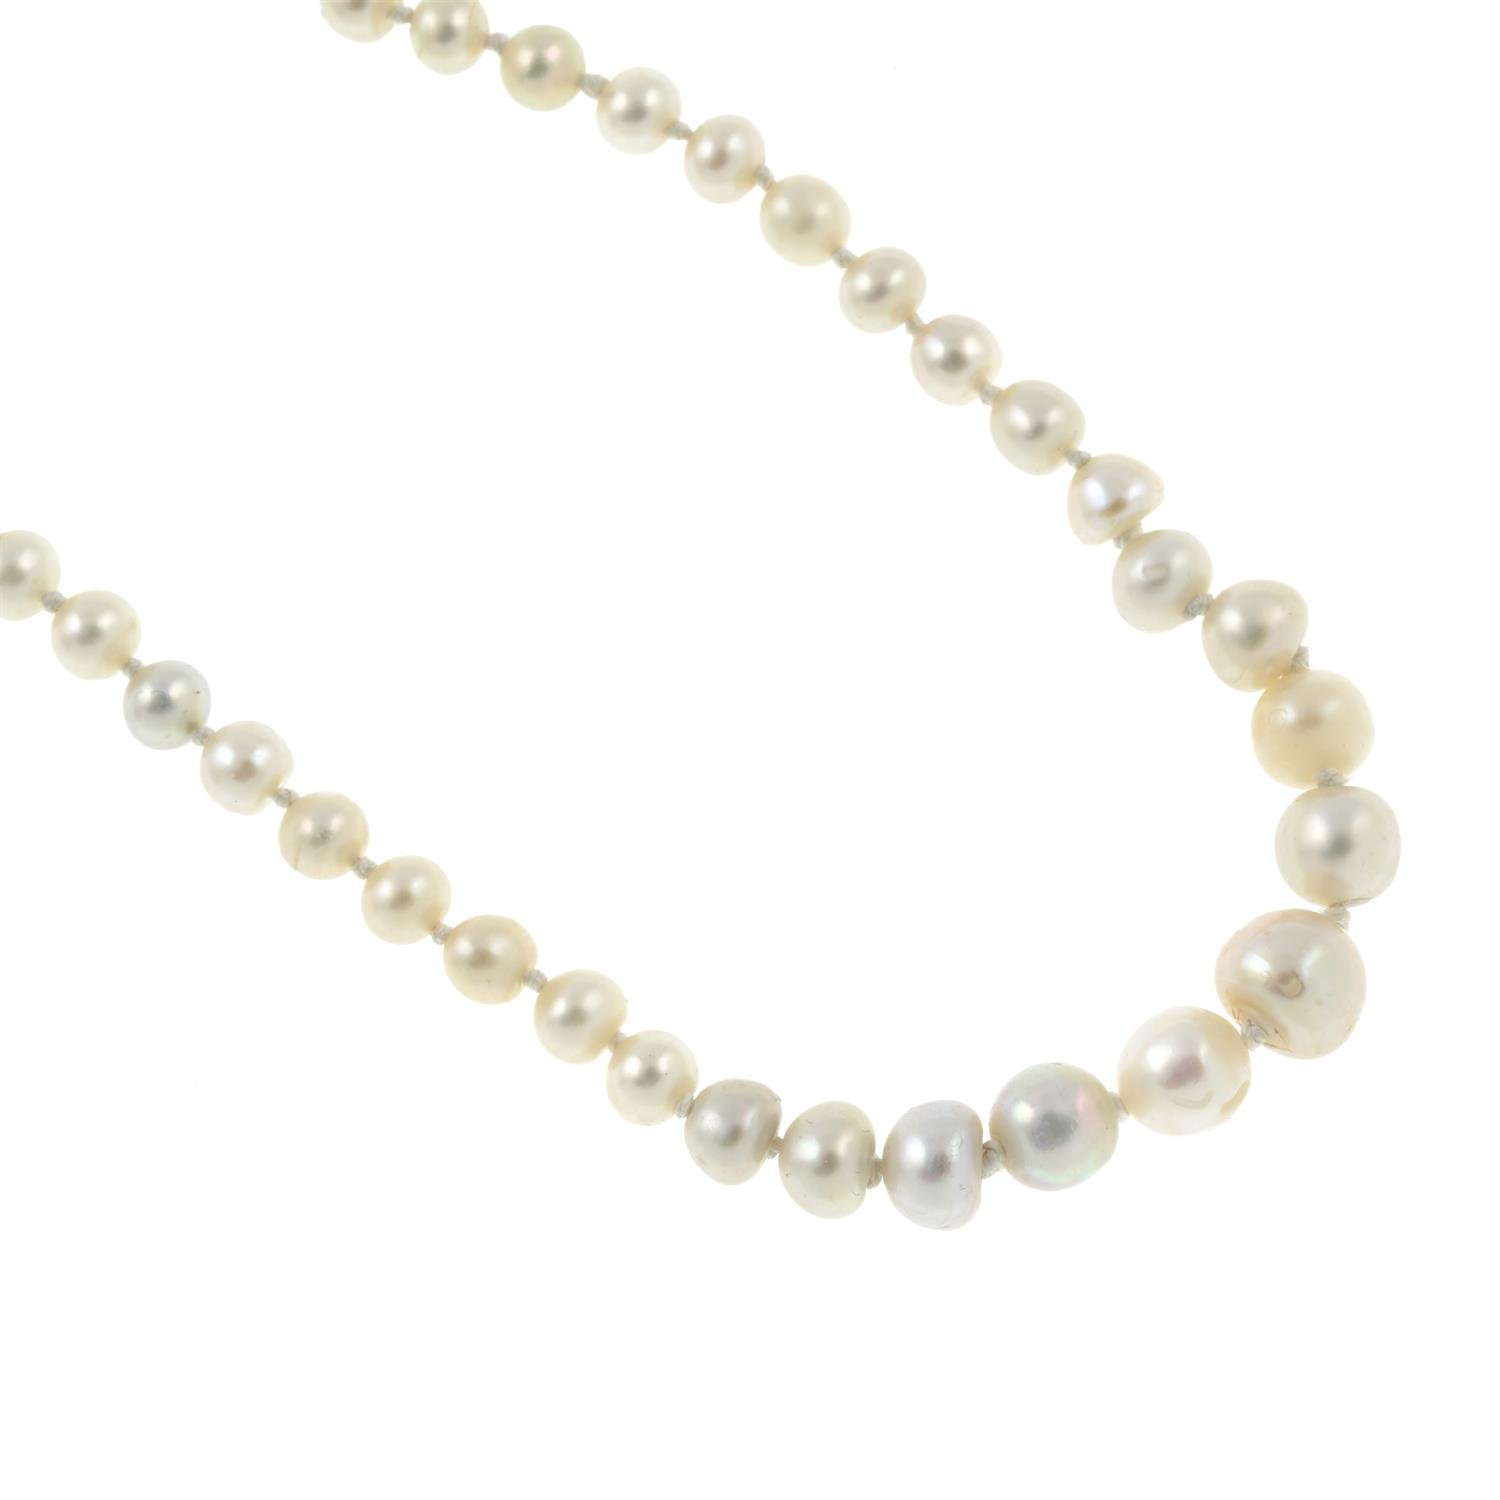 A graduated natural pearl single-strand necklace, with old-cut diamond clasp. - Image 4 of 6